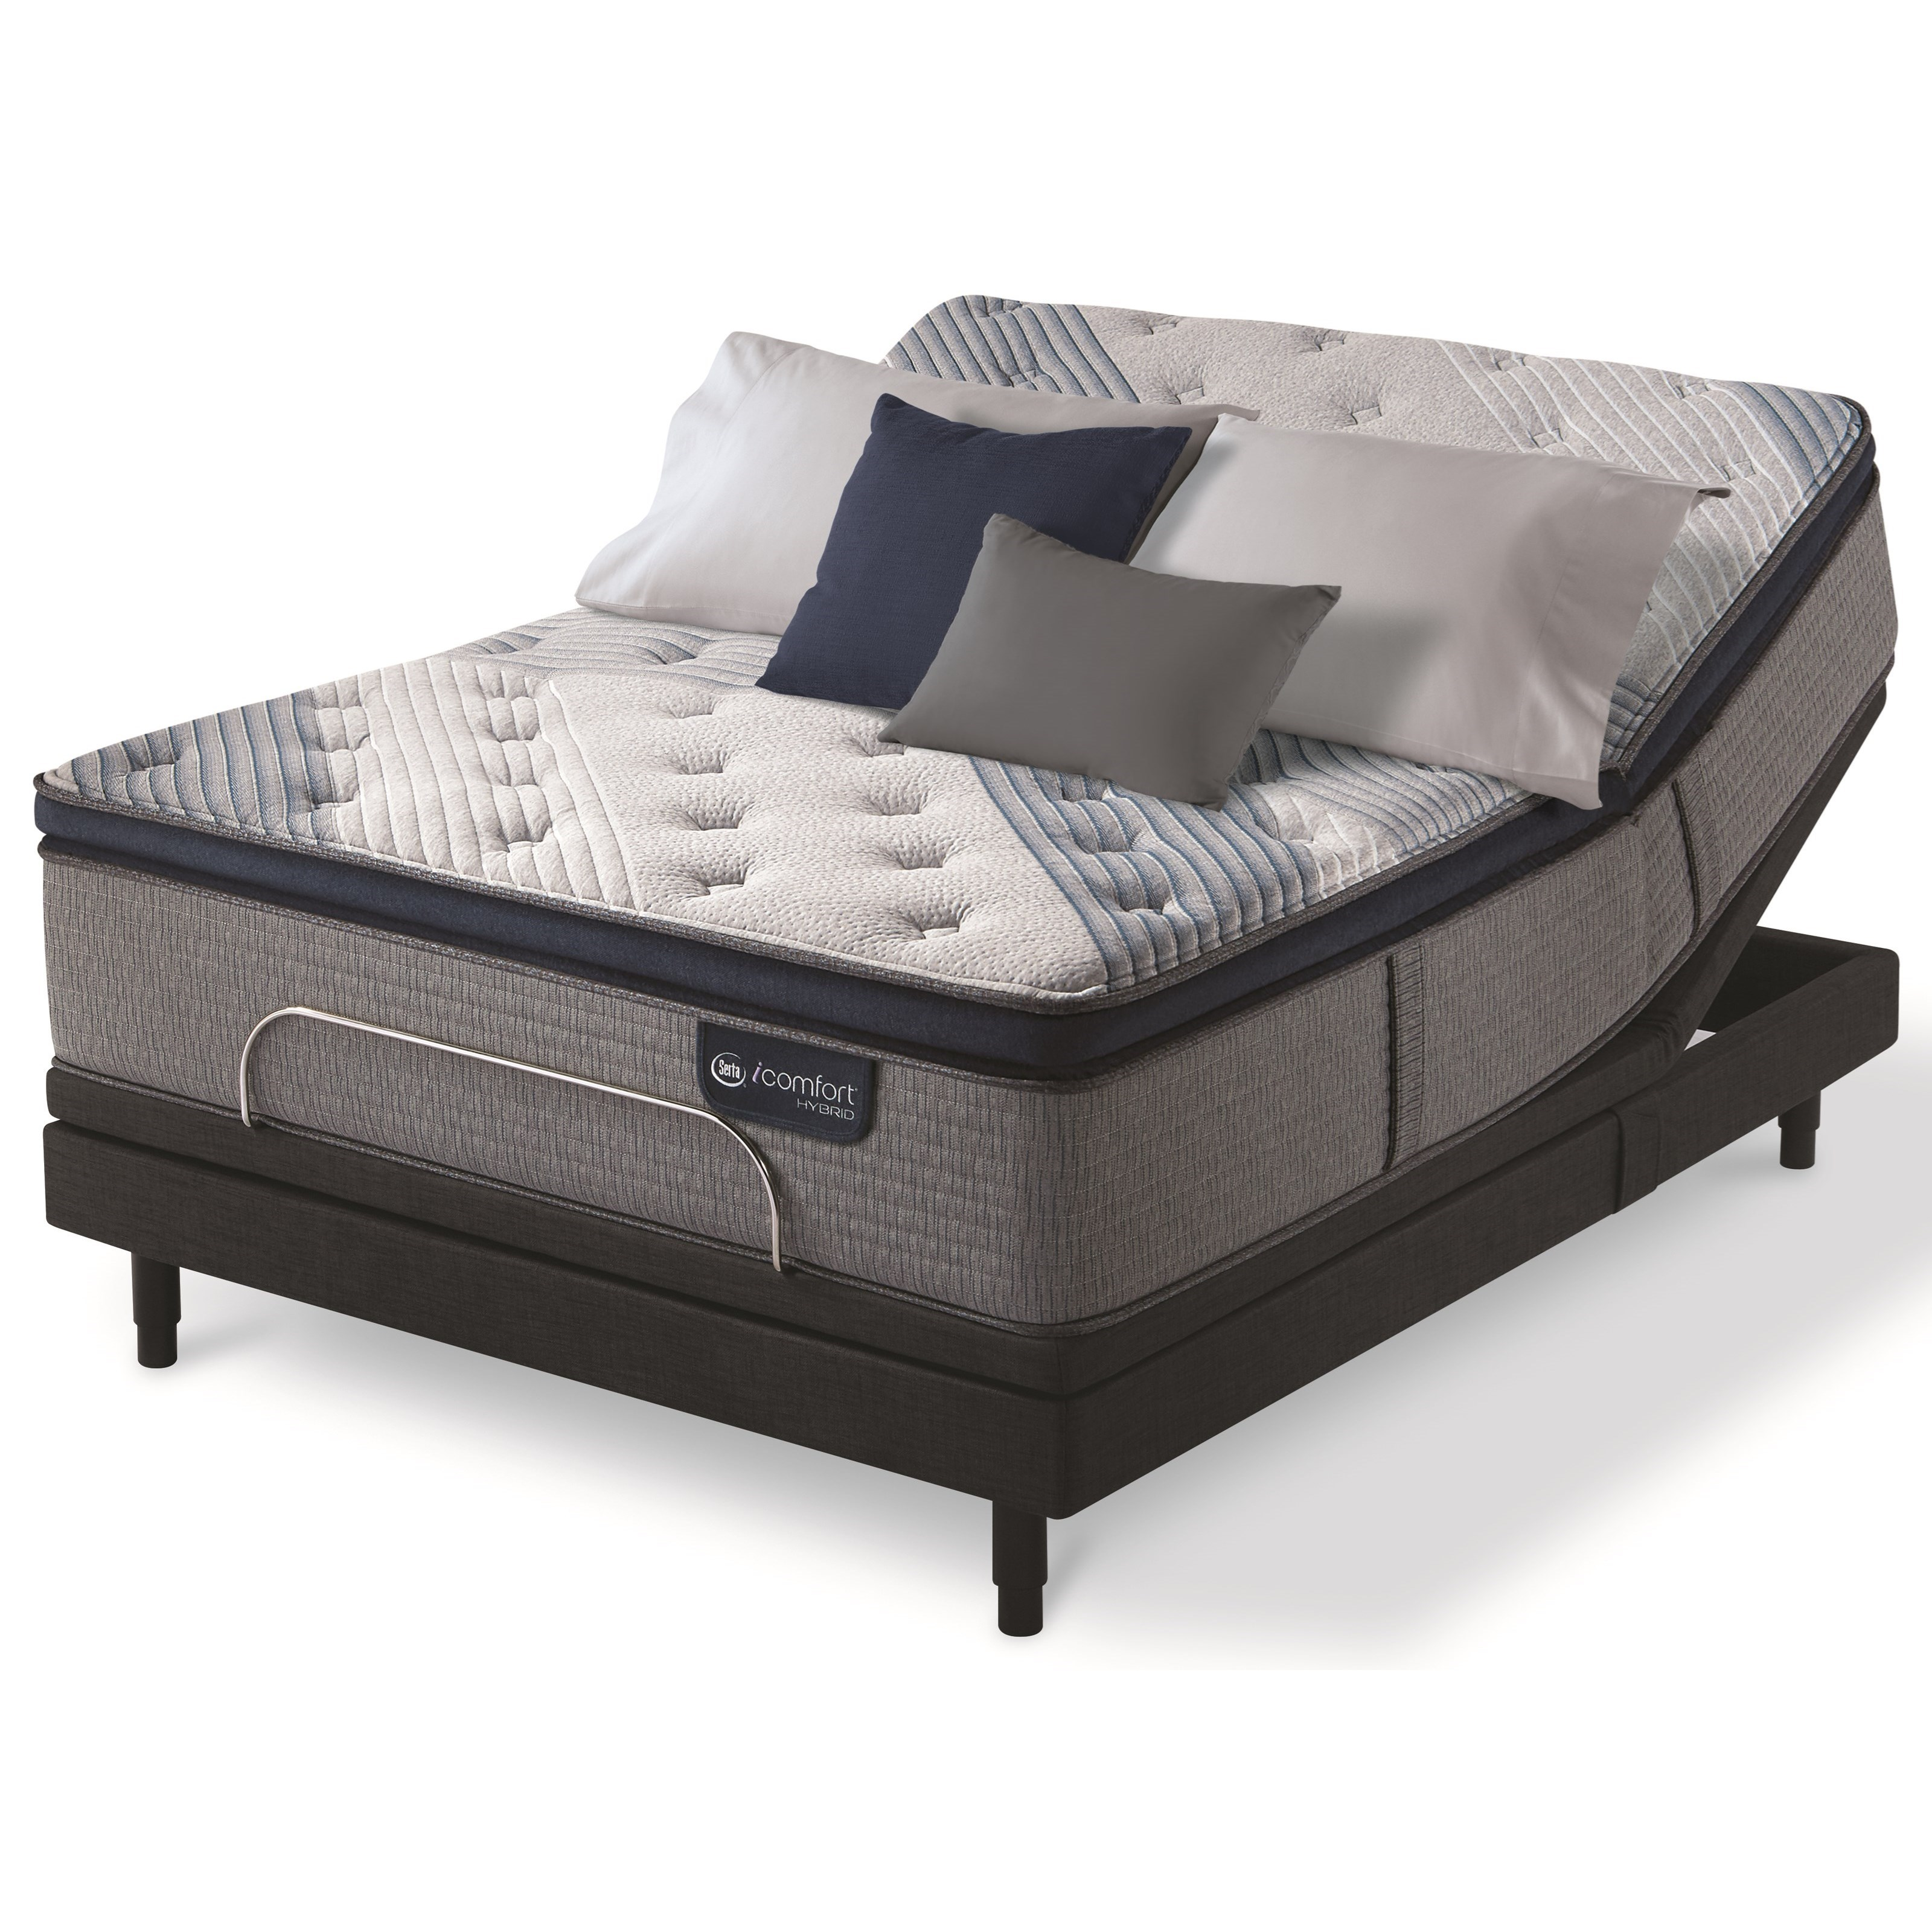 Queen Cushion Firm PT Hybrid Adj Set